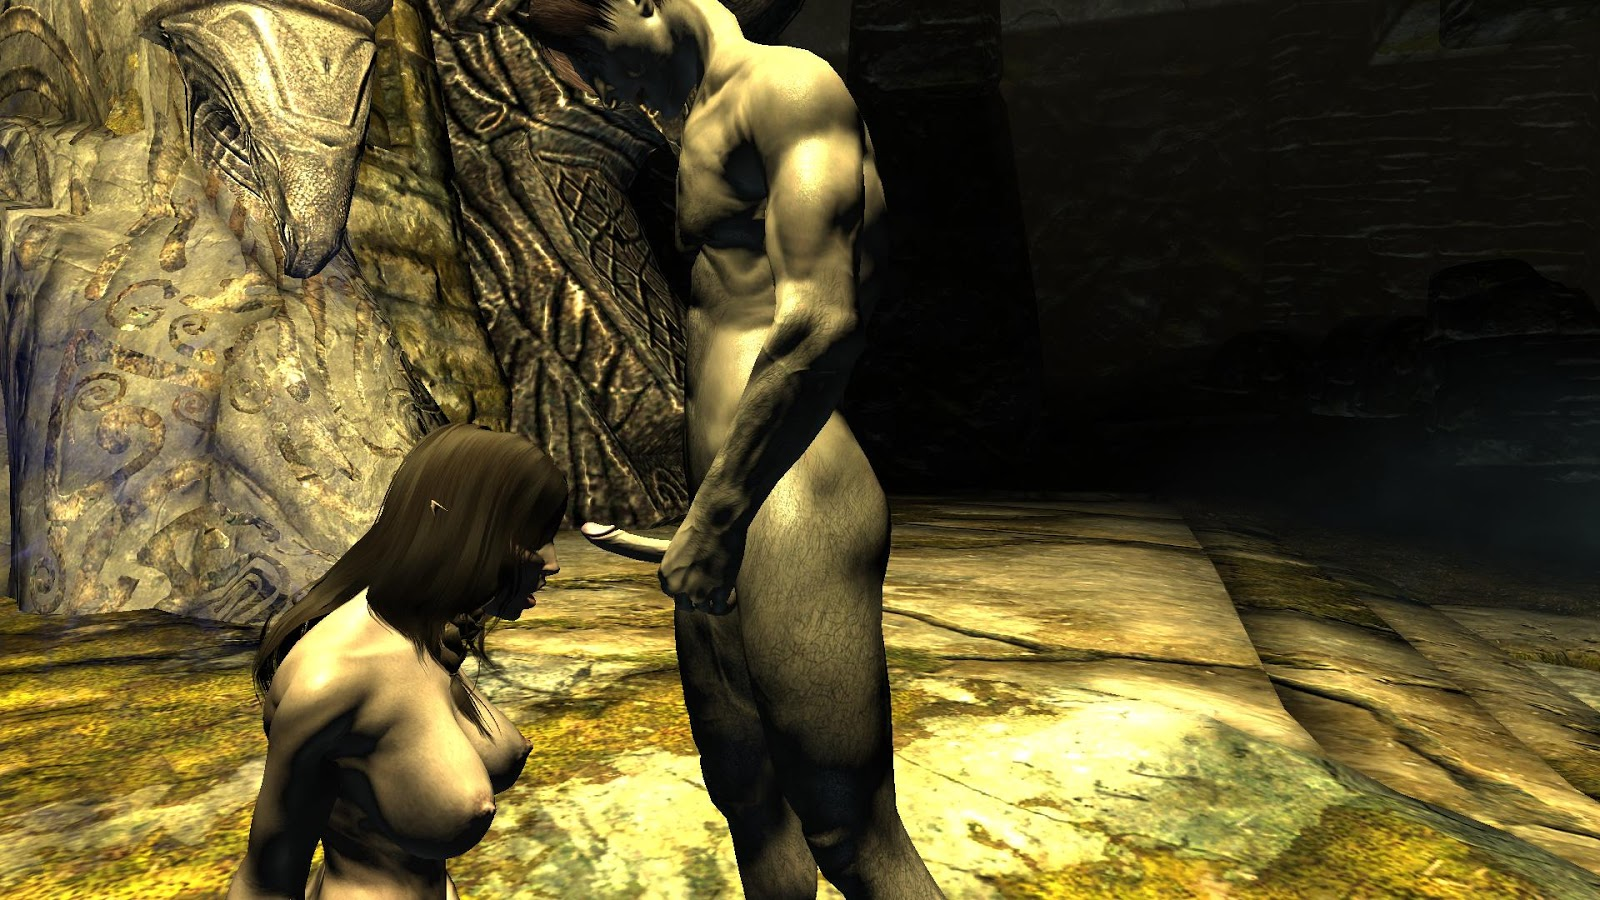 Skyrim hentai picture sexual images